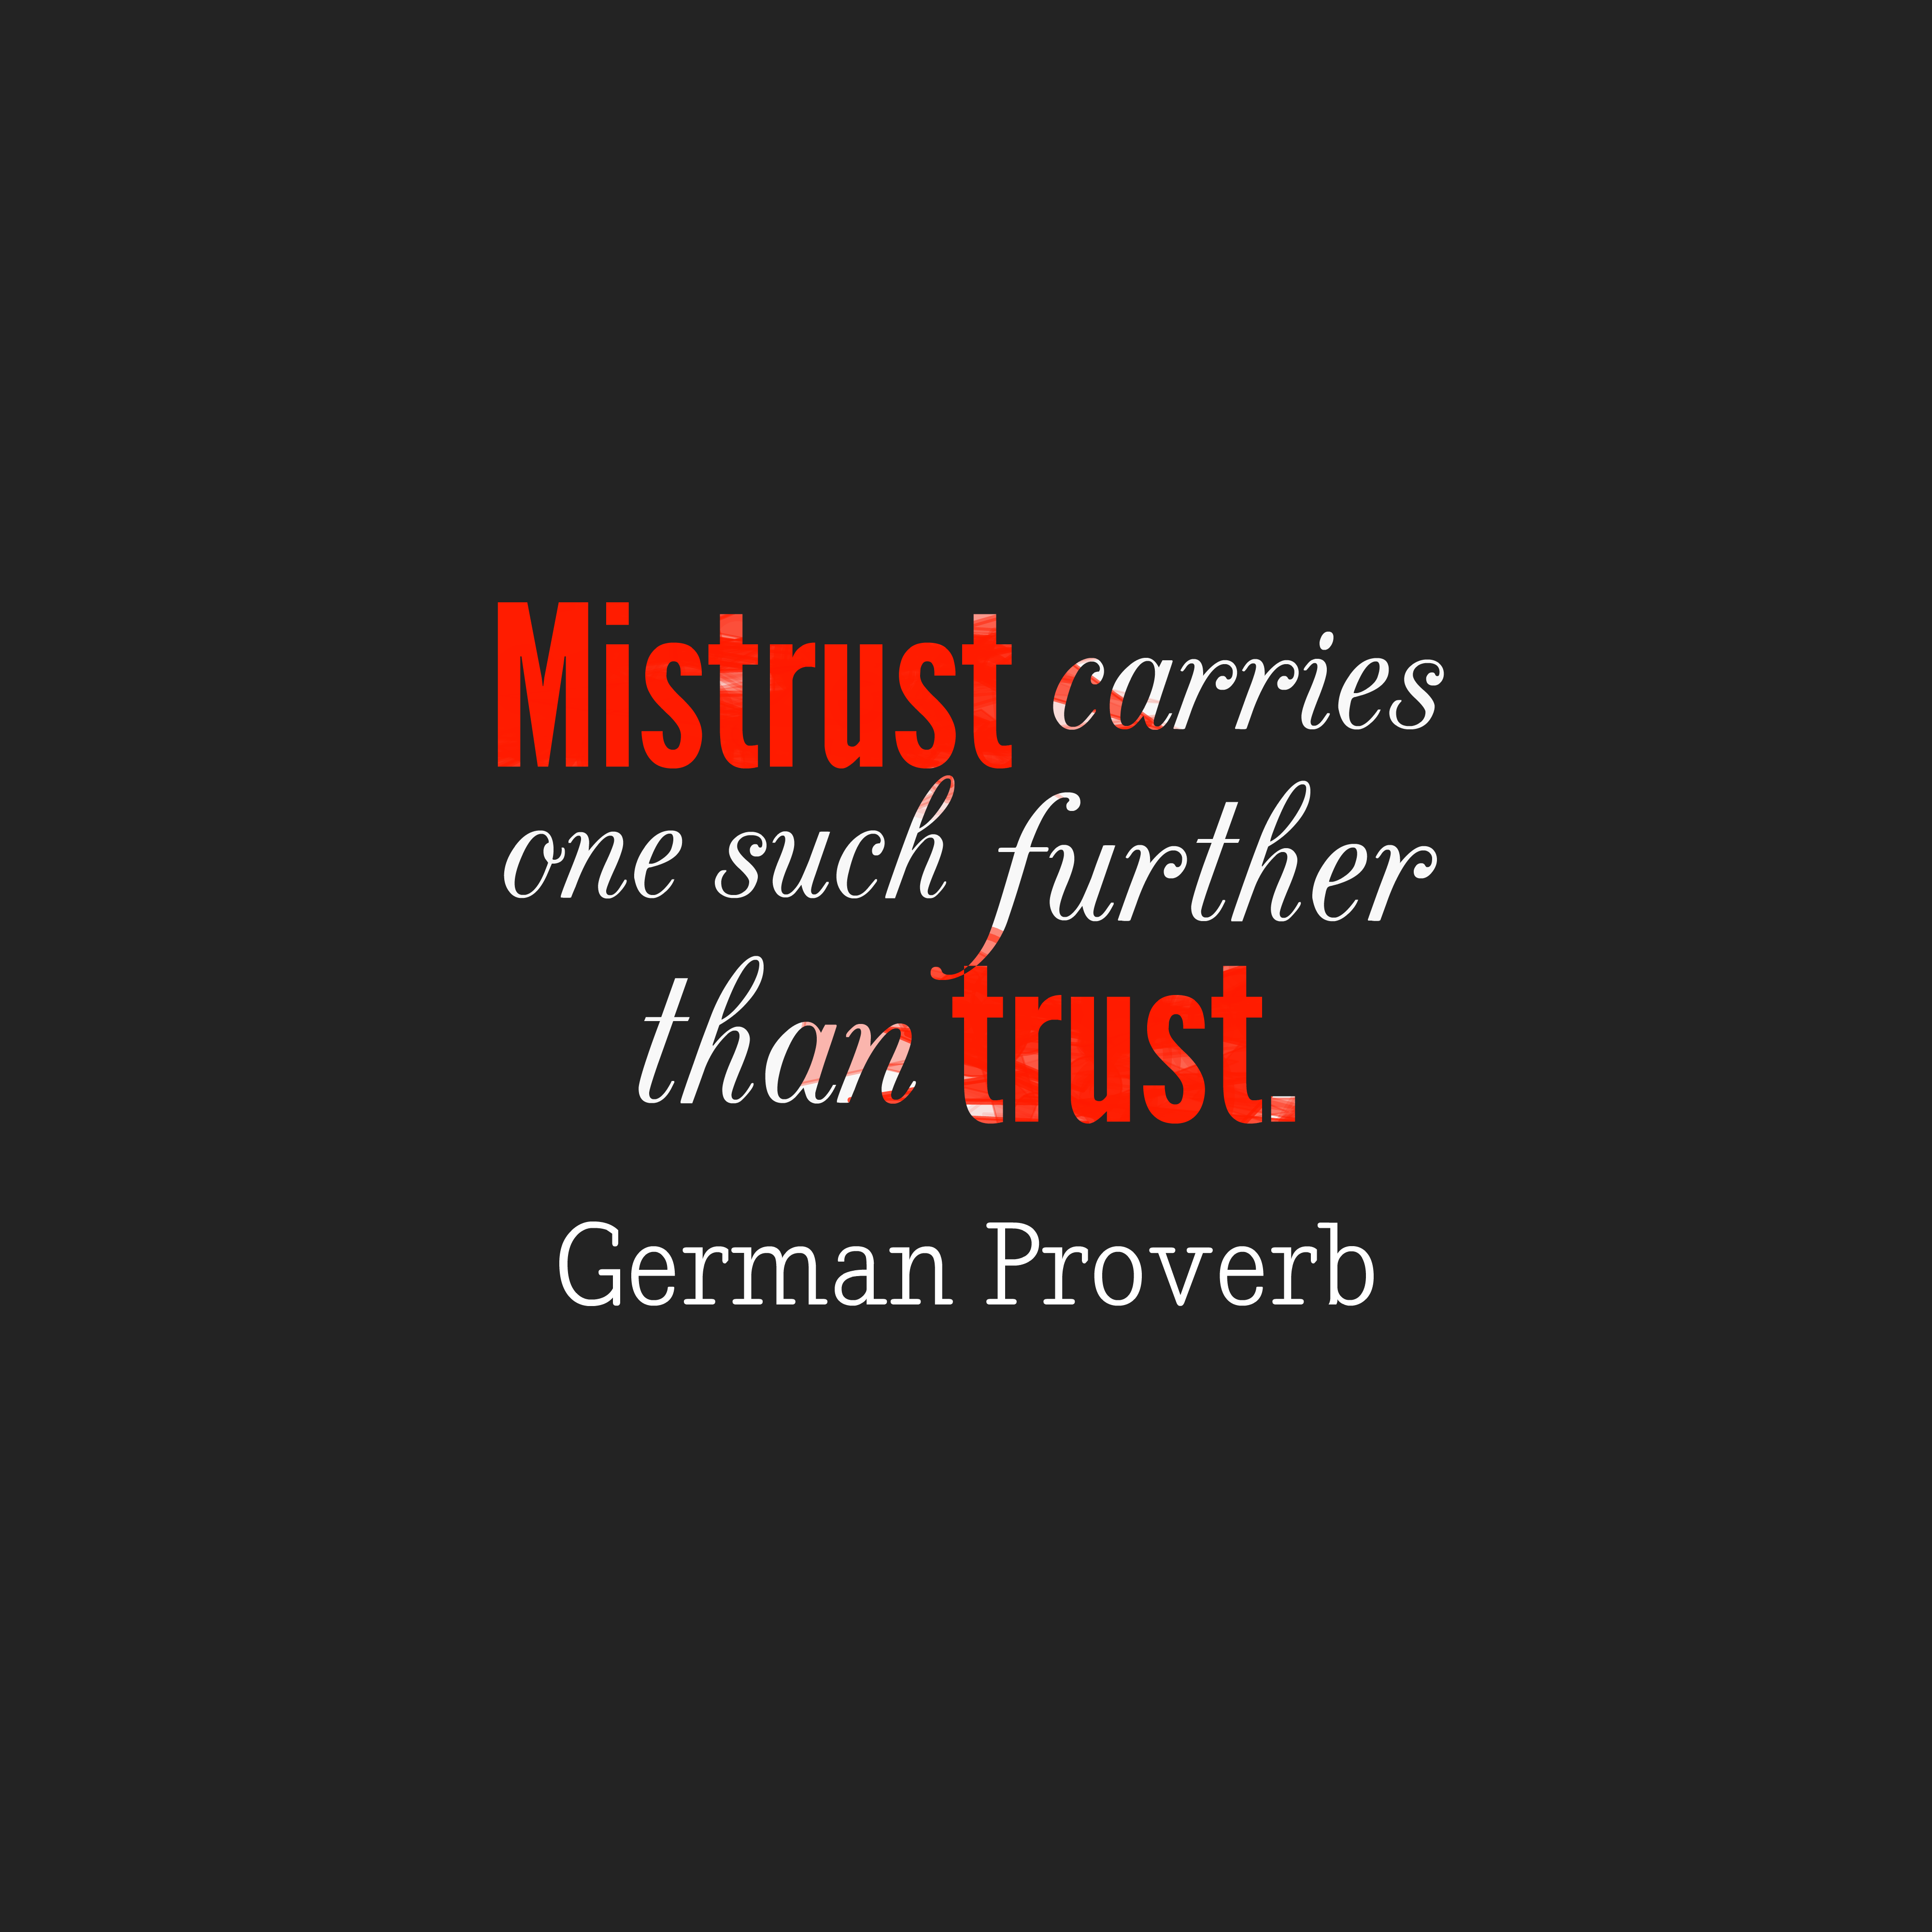 Quotes image of Mistrust carries one such further than trust.